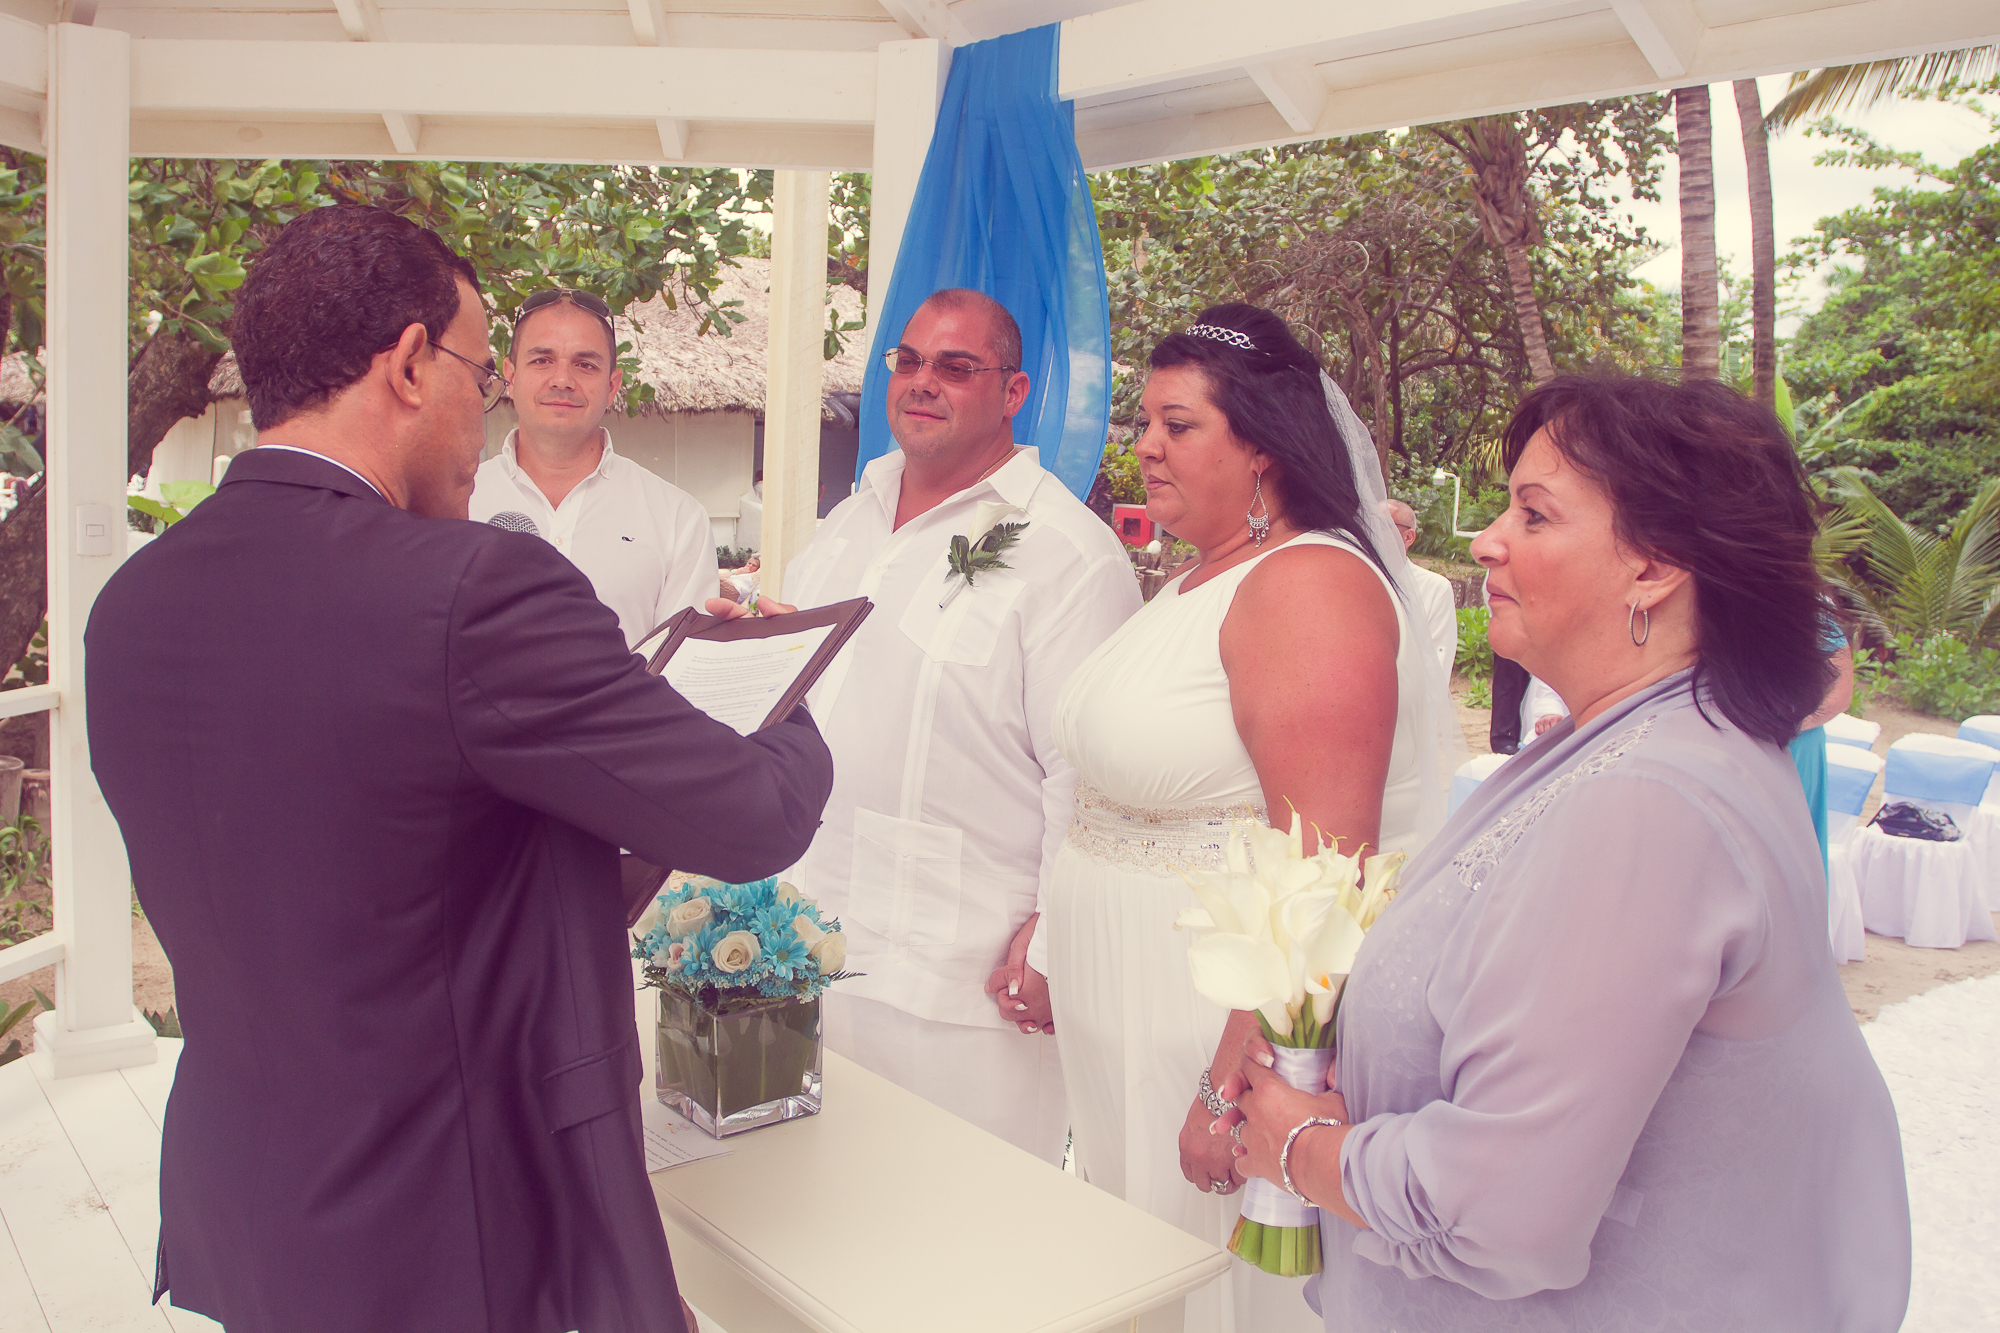 Puerto Plata Wedding Photographer M-J-10